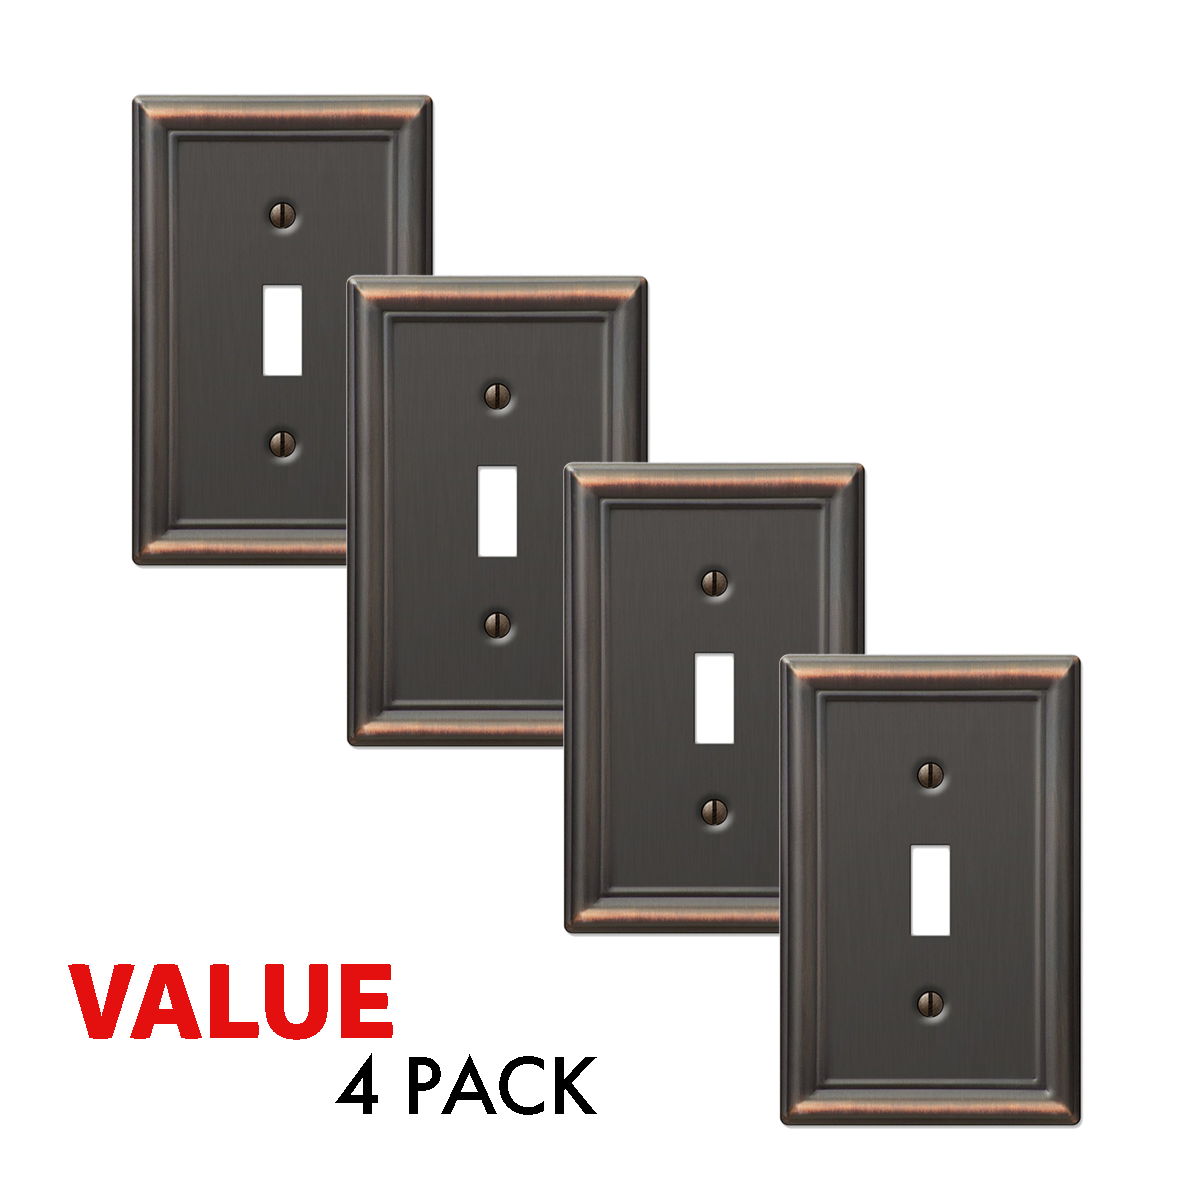 Value 4-Pack Toggle Wall Plate Light Switch Wallplate, Oil Rubbed Bronze Electrical Outlets, Switches & Accessories